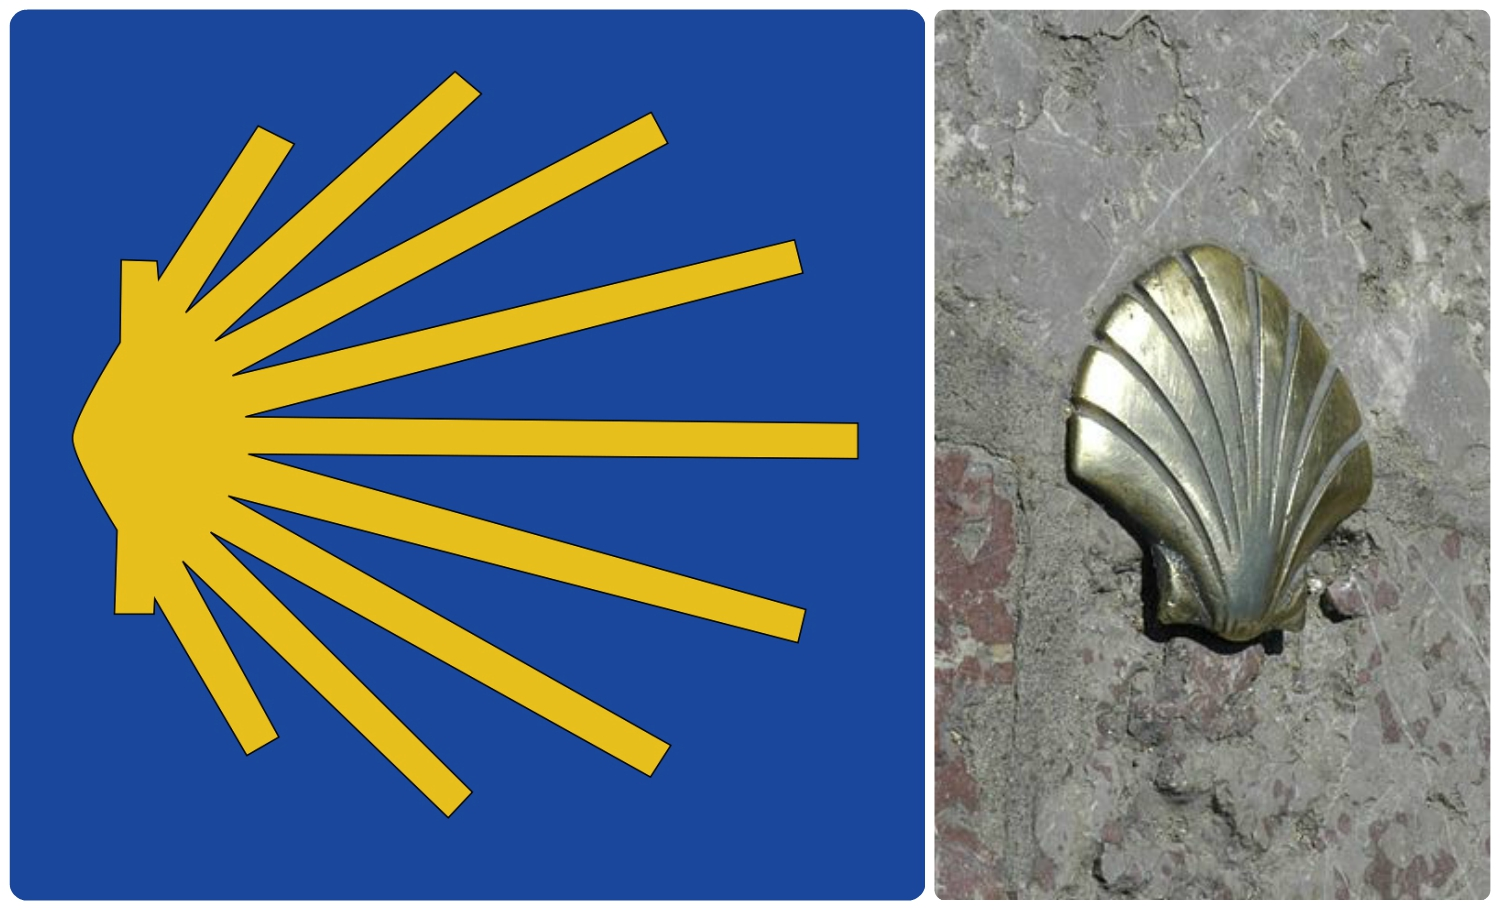 These shells are markers for the Camino de Santiago. St. James' Church in Antwerp is a stop on the route.